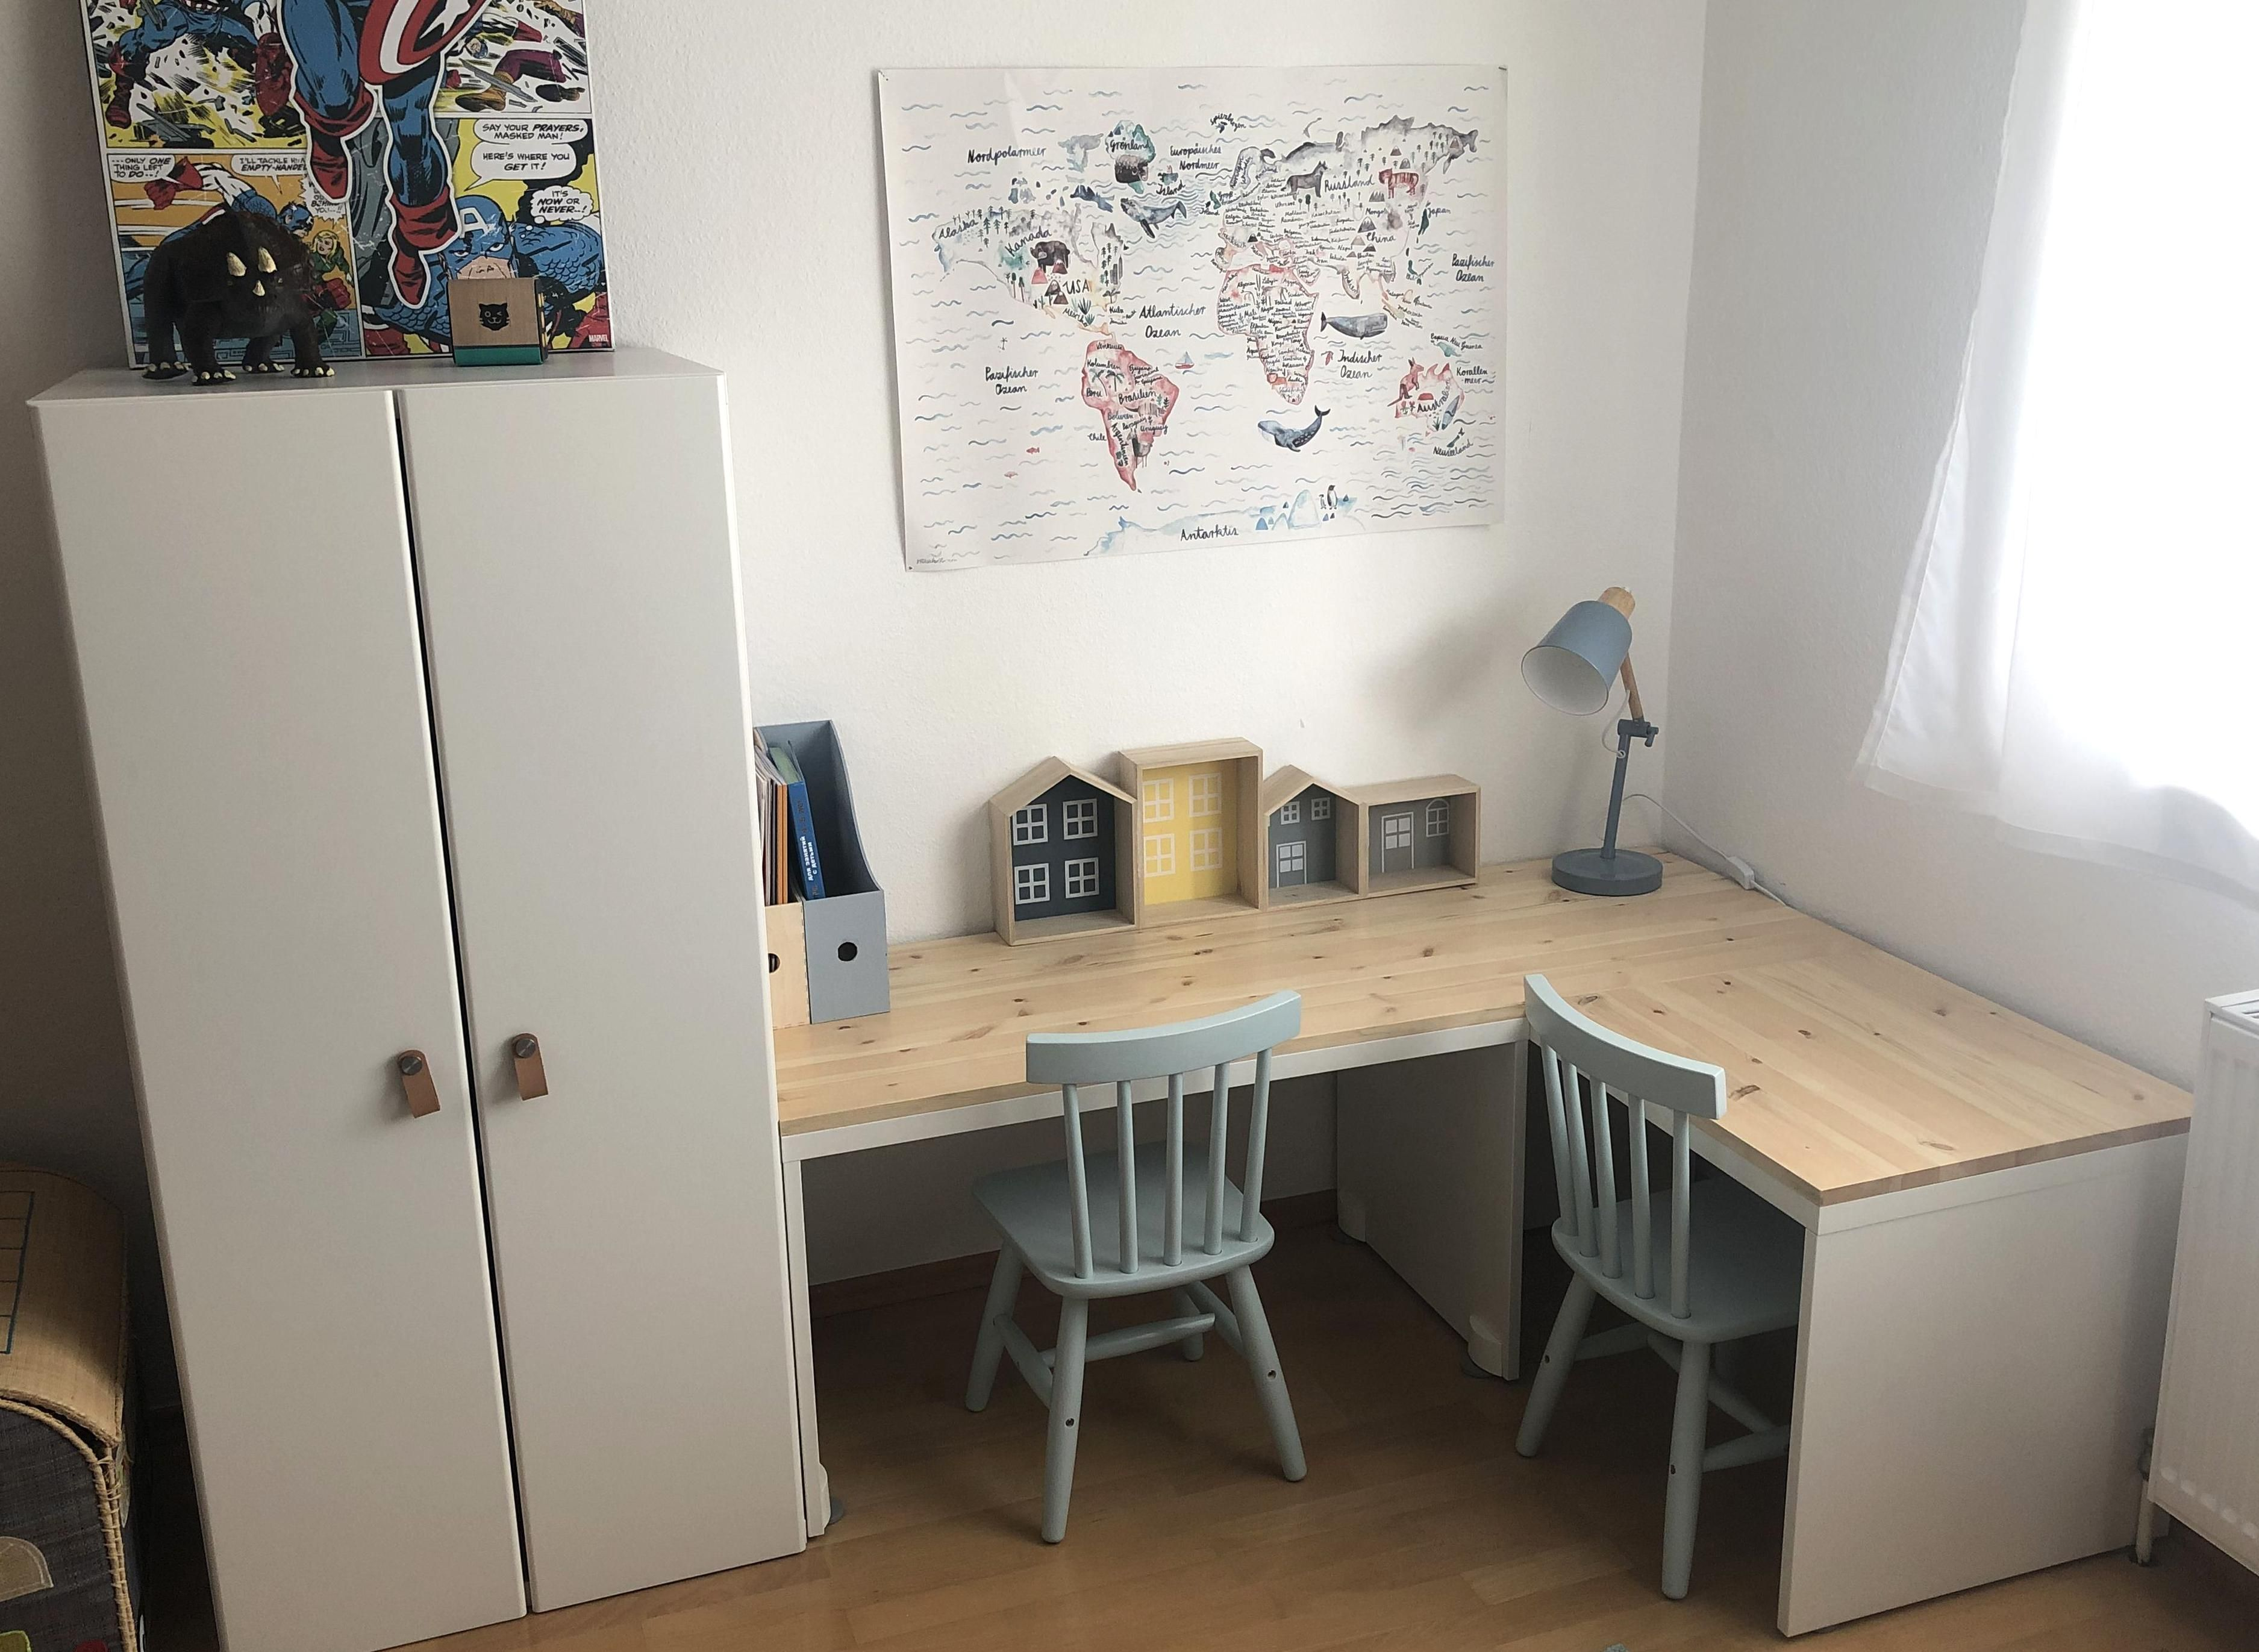 Ikea Hack Fr Kinderzimmer Schreibtisch Stuva Hack In 2020 Nursery Room Boy Boy S Room Kids Room Desk